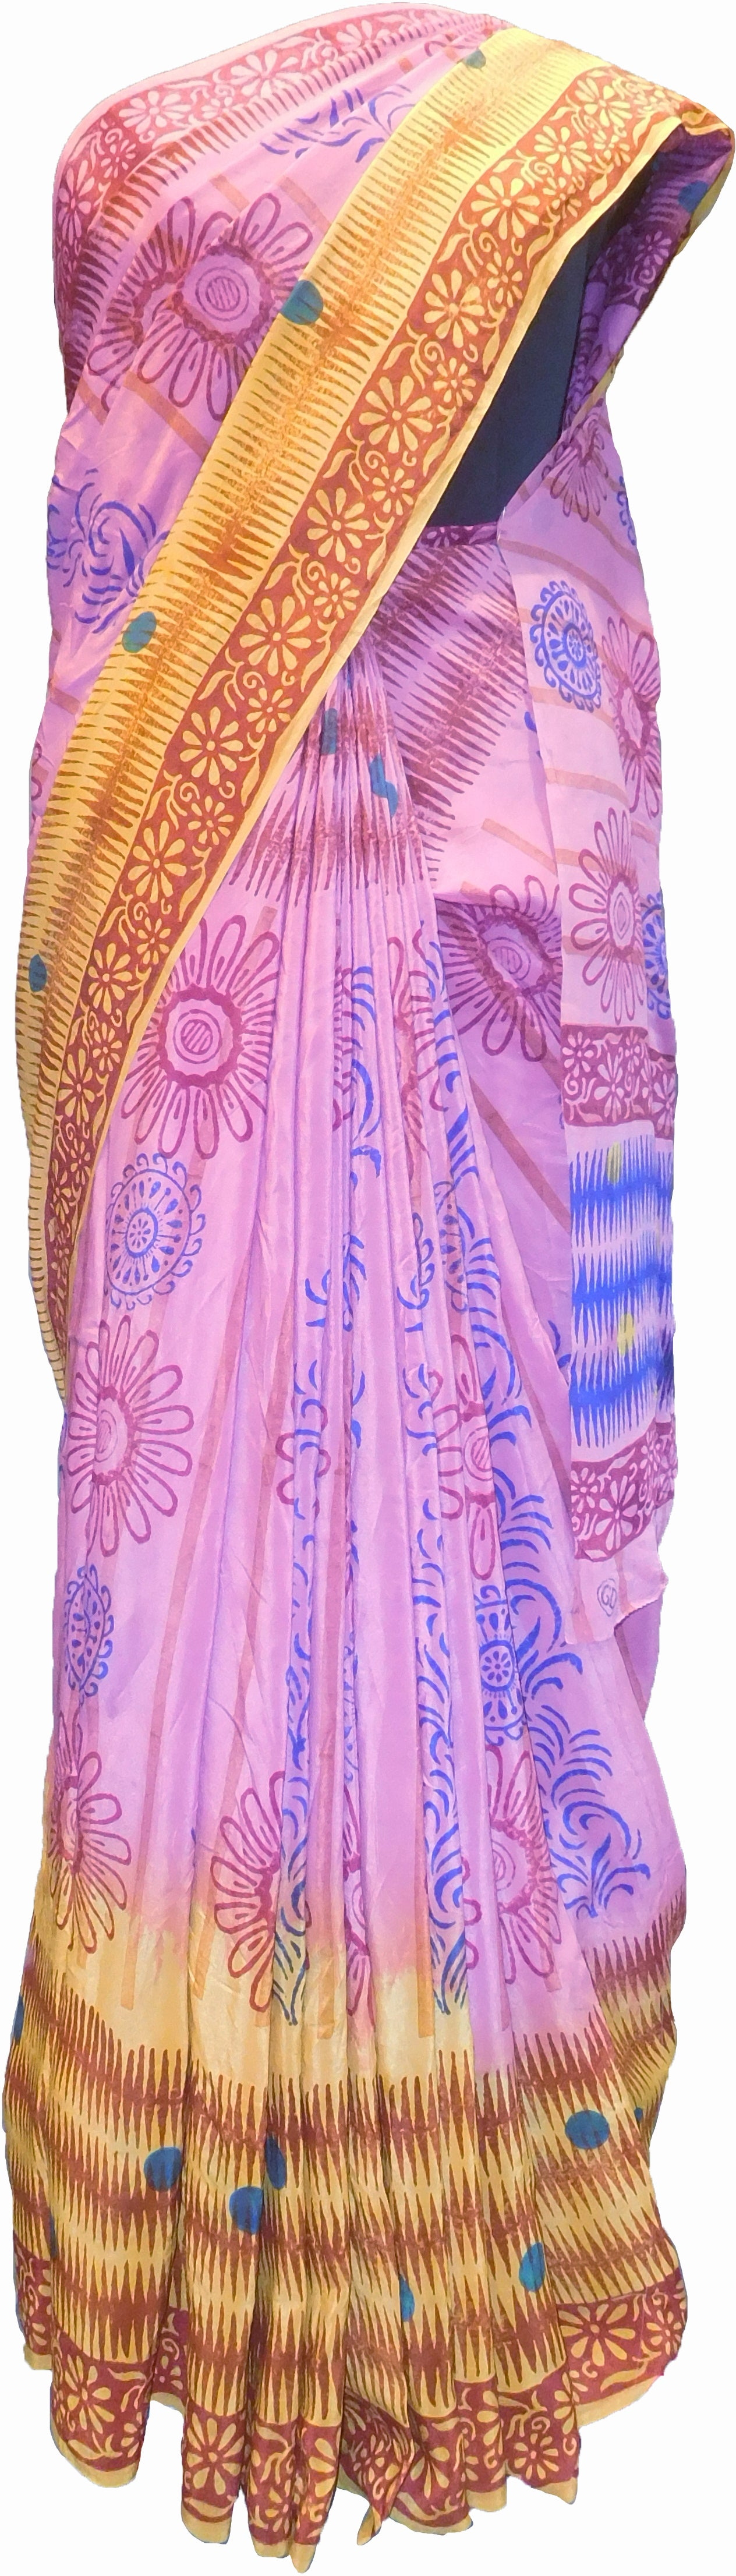 SMSAREE Multi Color Designer Wedding Partywear Pure Crepe Hand Brush Print Hand Embroidery Work Bridal Saree Sari With Blouse Piece RP349